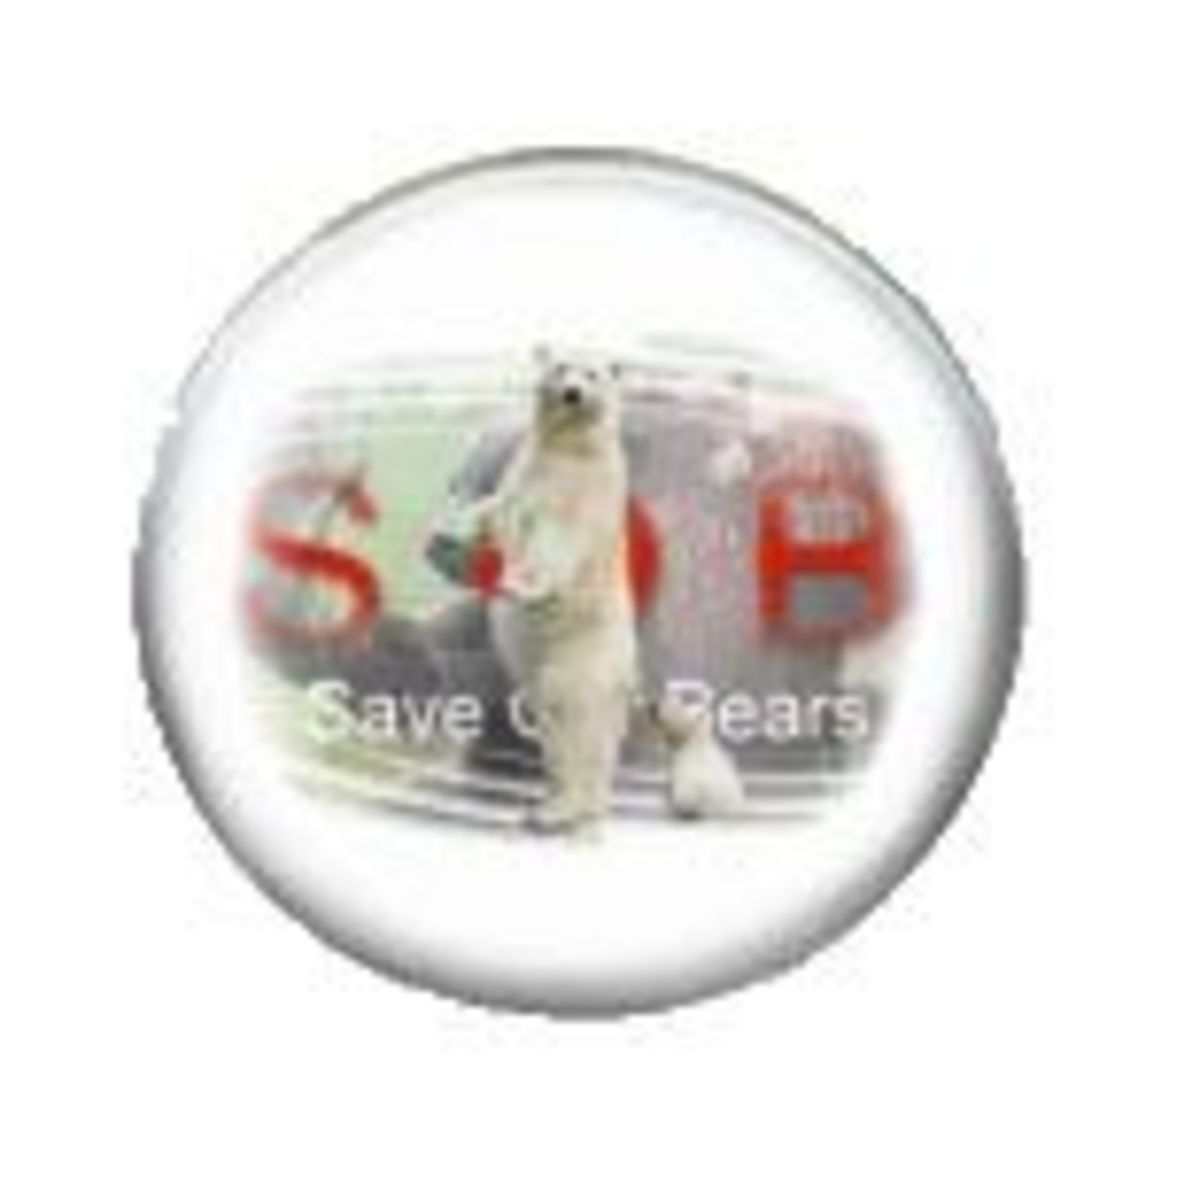 save our bears badge